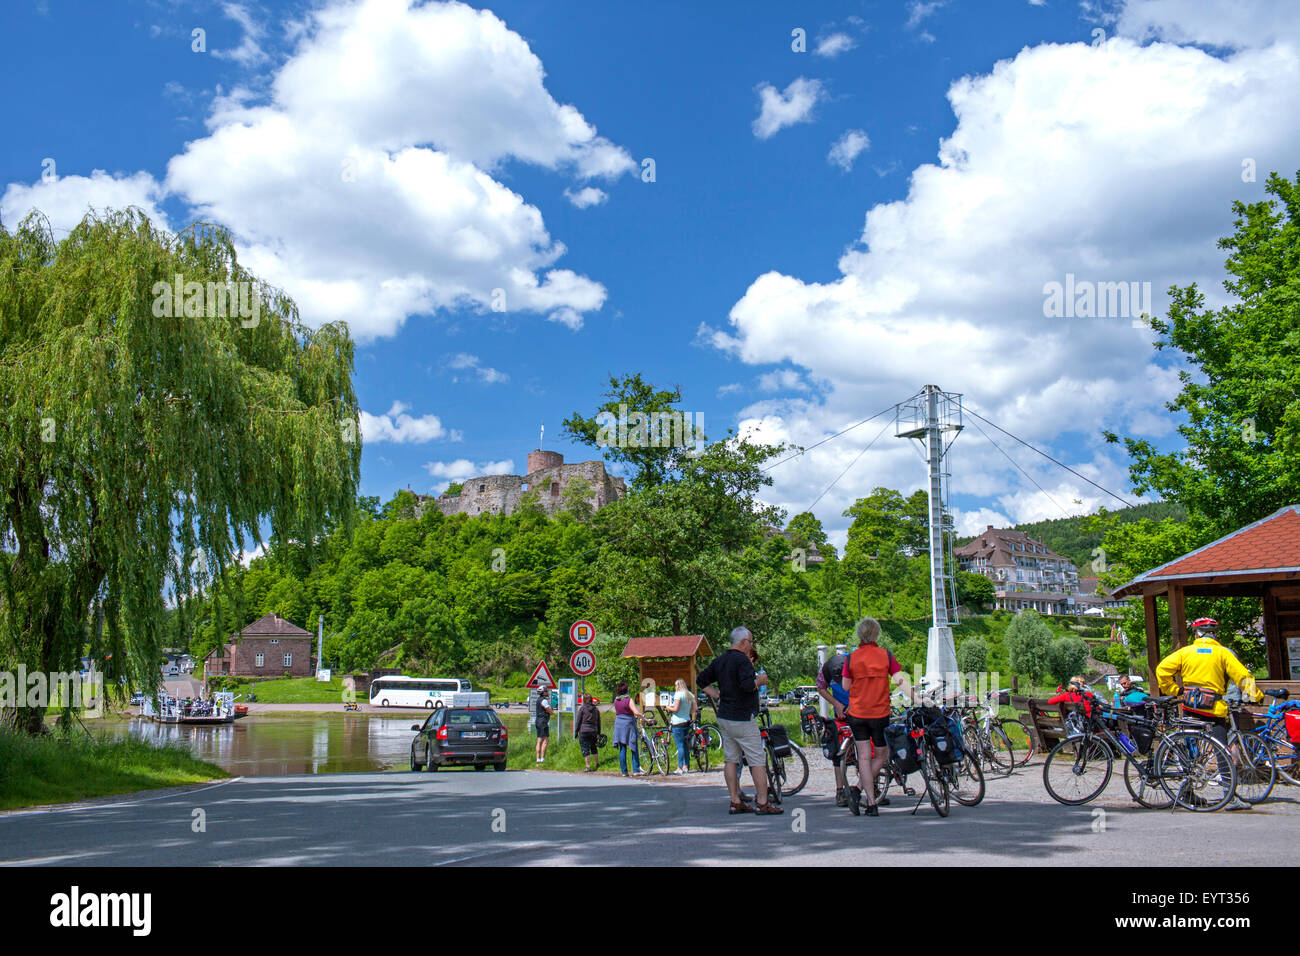 Germany Weserbergland (Weser mountainous country), Lower Saxony, Polle, Weser ferry, bicycle tourist - Stock Image